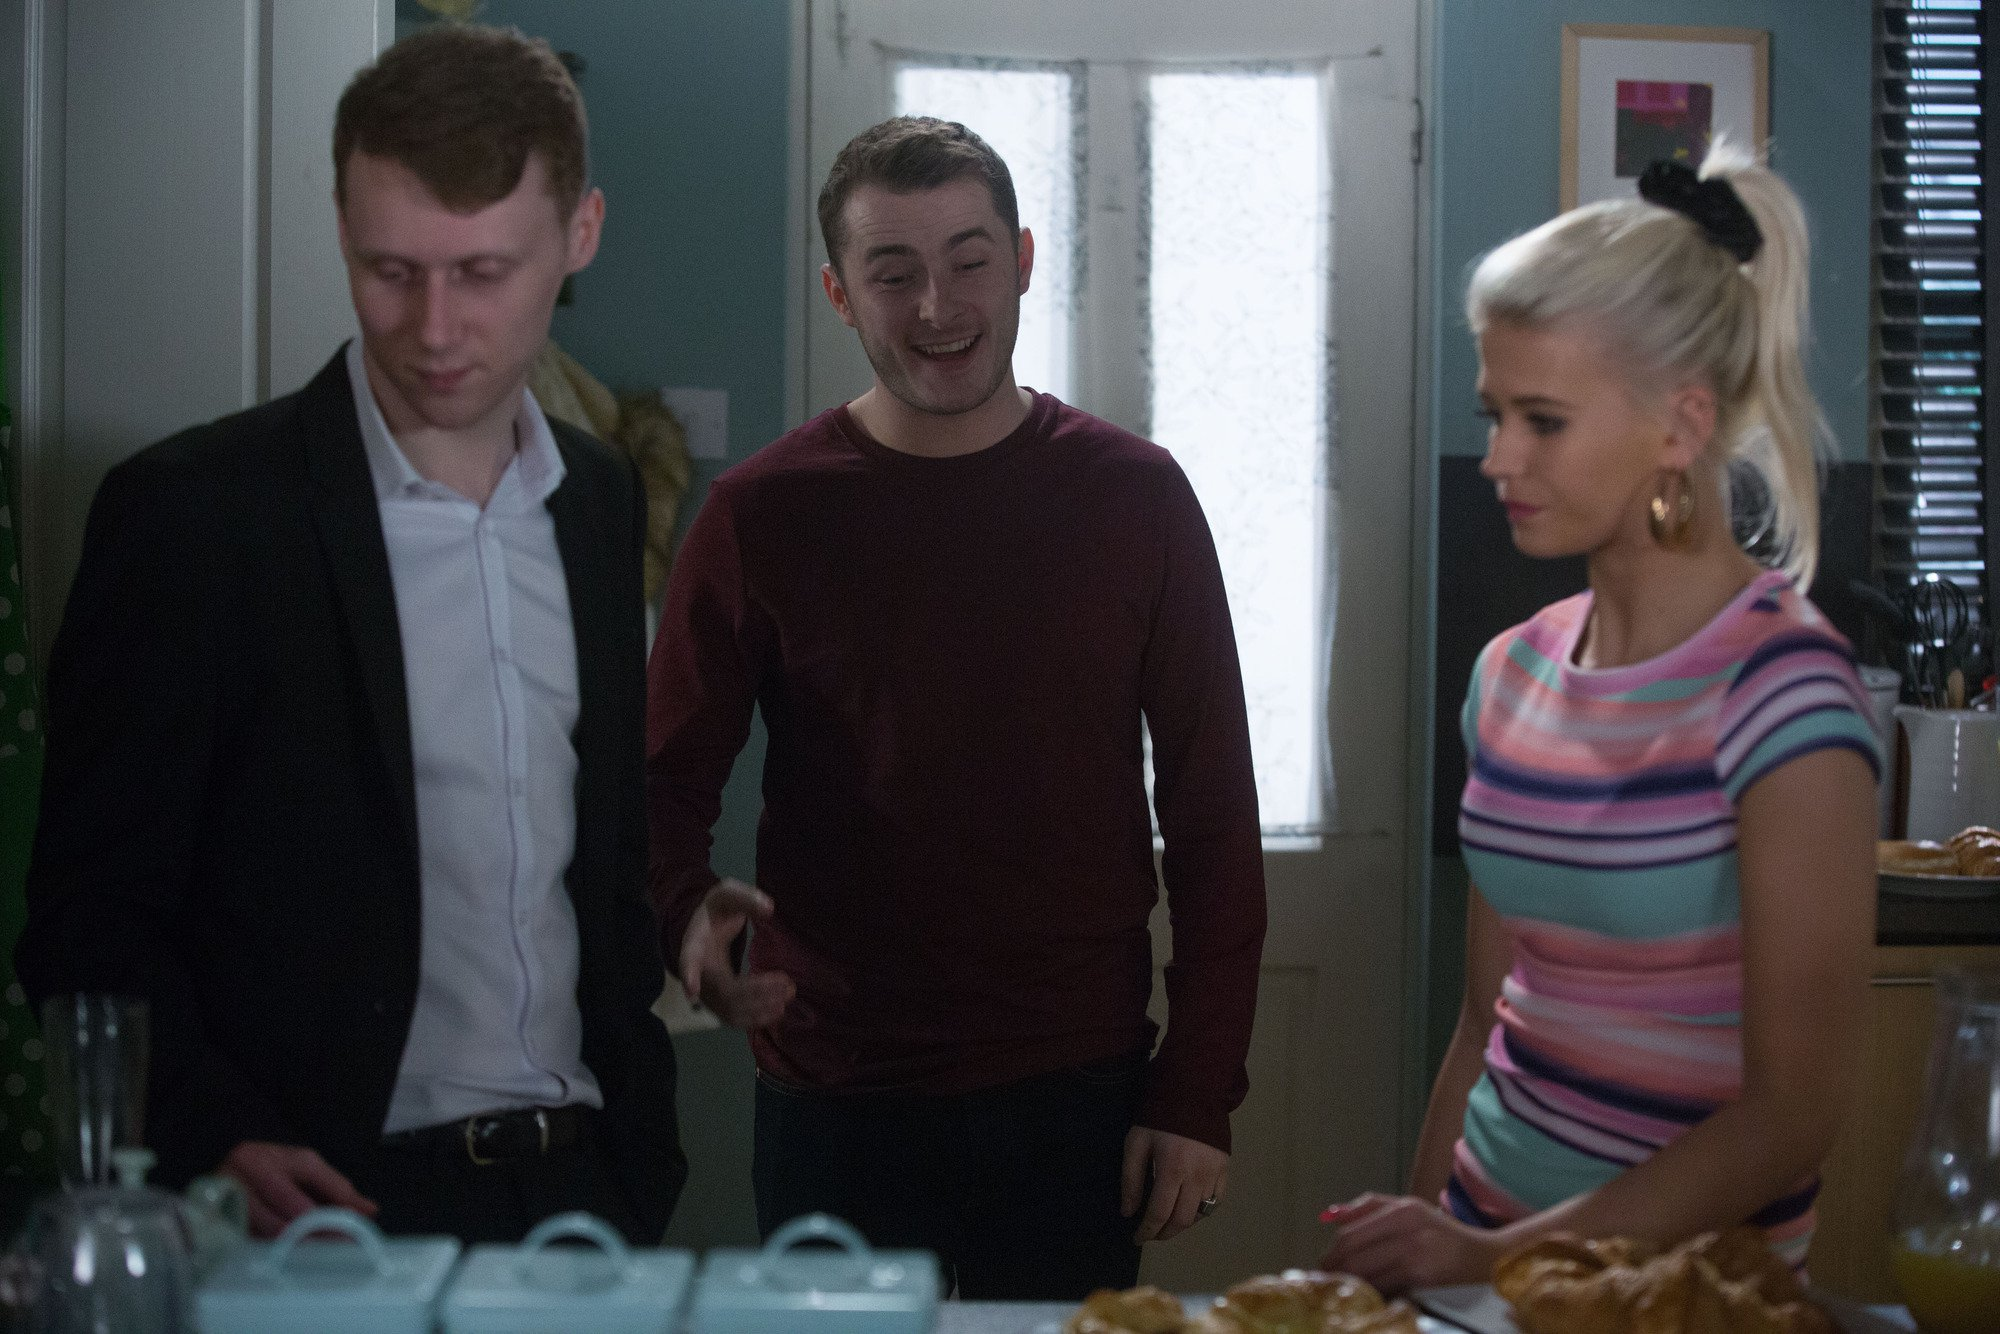 EastEnders spoilers: Ben Mitchell drops a shocking bombshell that changes everything